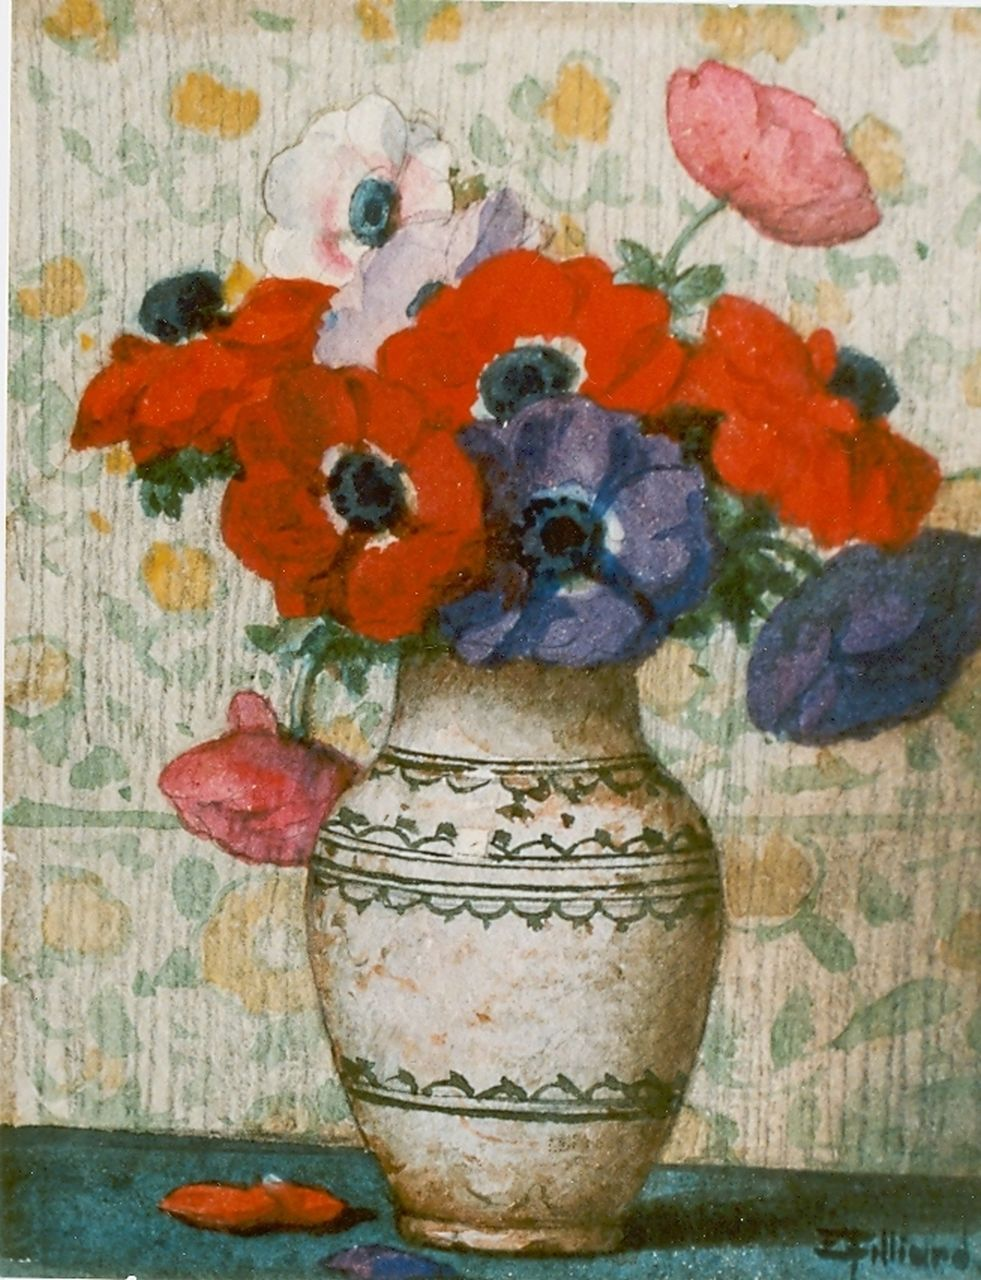 Filliard E.  | Ernest Filliard, Anemones in a vase, watercolour on paper 15.5 x 12.5 cm, signed l.r.